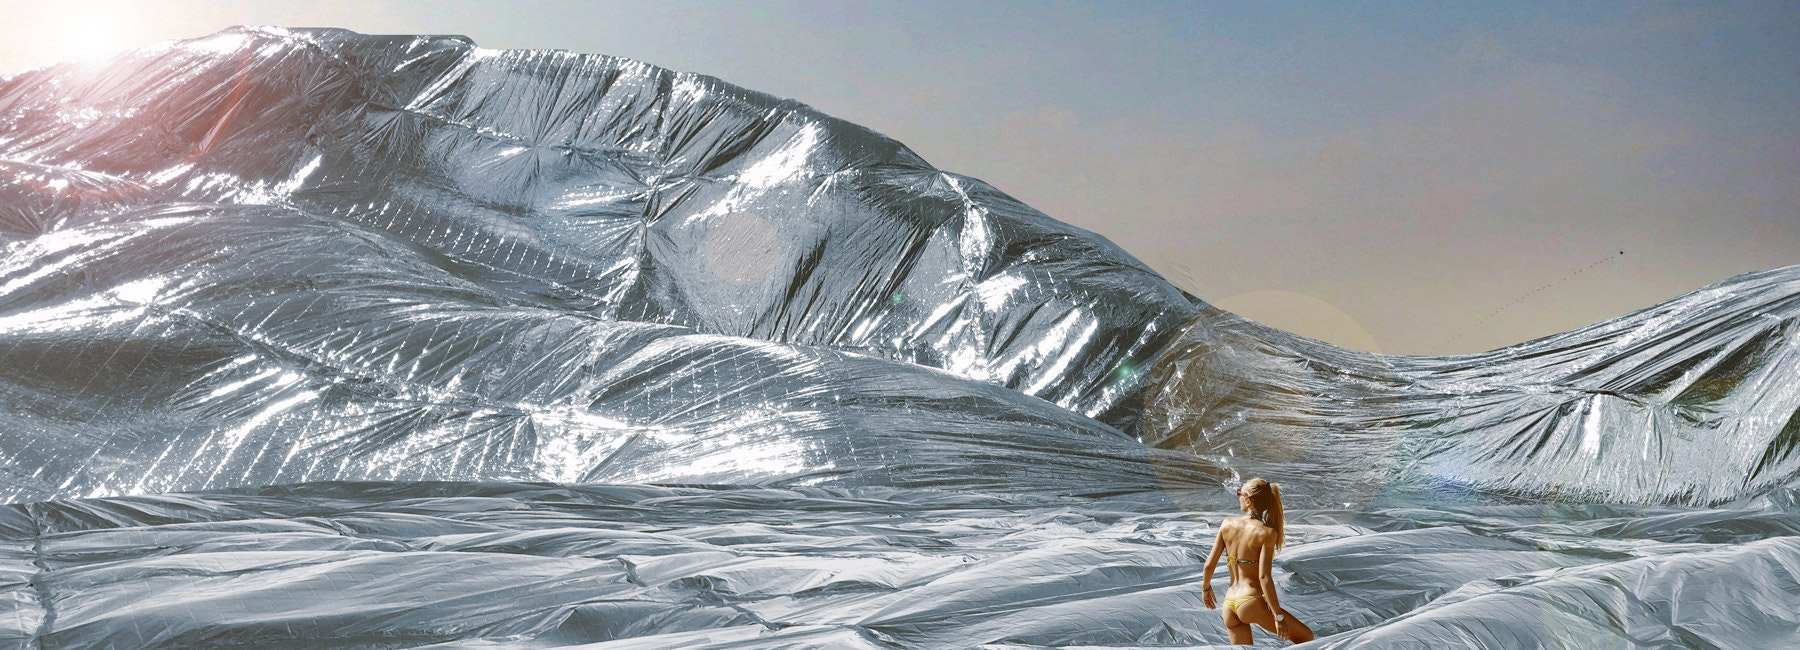 100-sqm-nasa-space-blanket-burning-man-sasha-shtanuk-designboom-1800